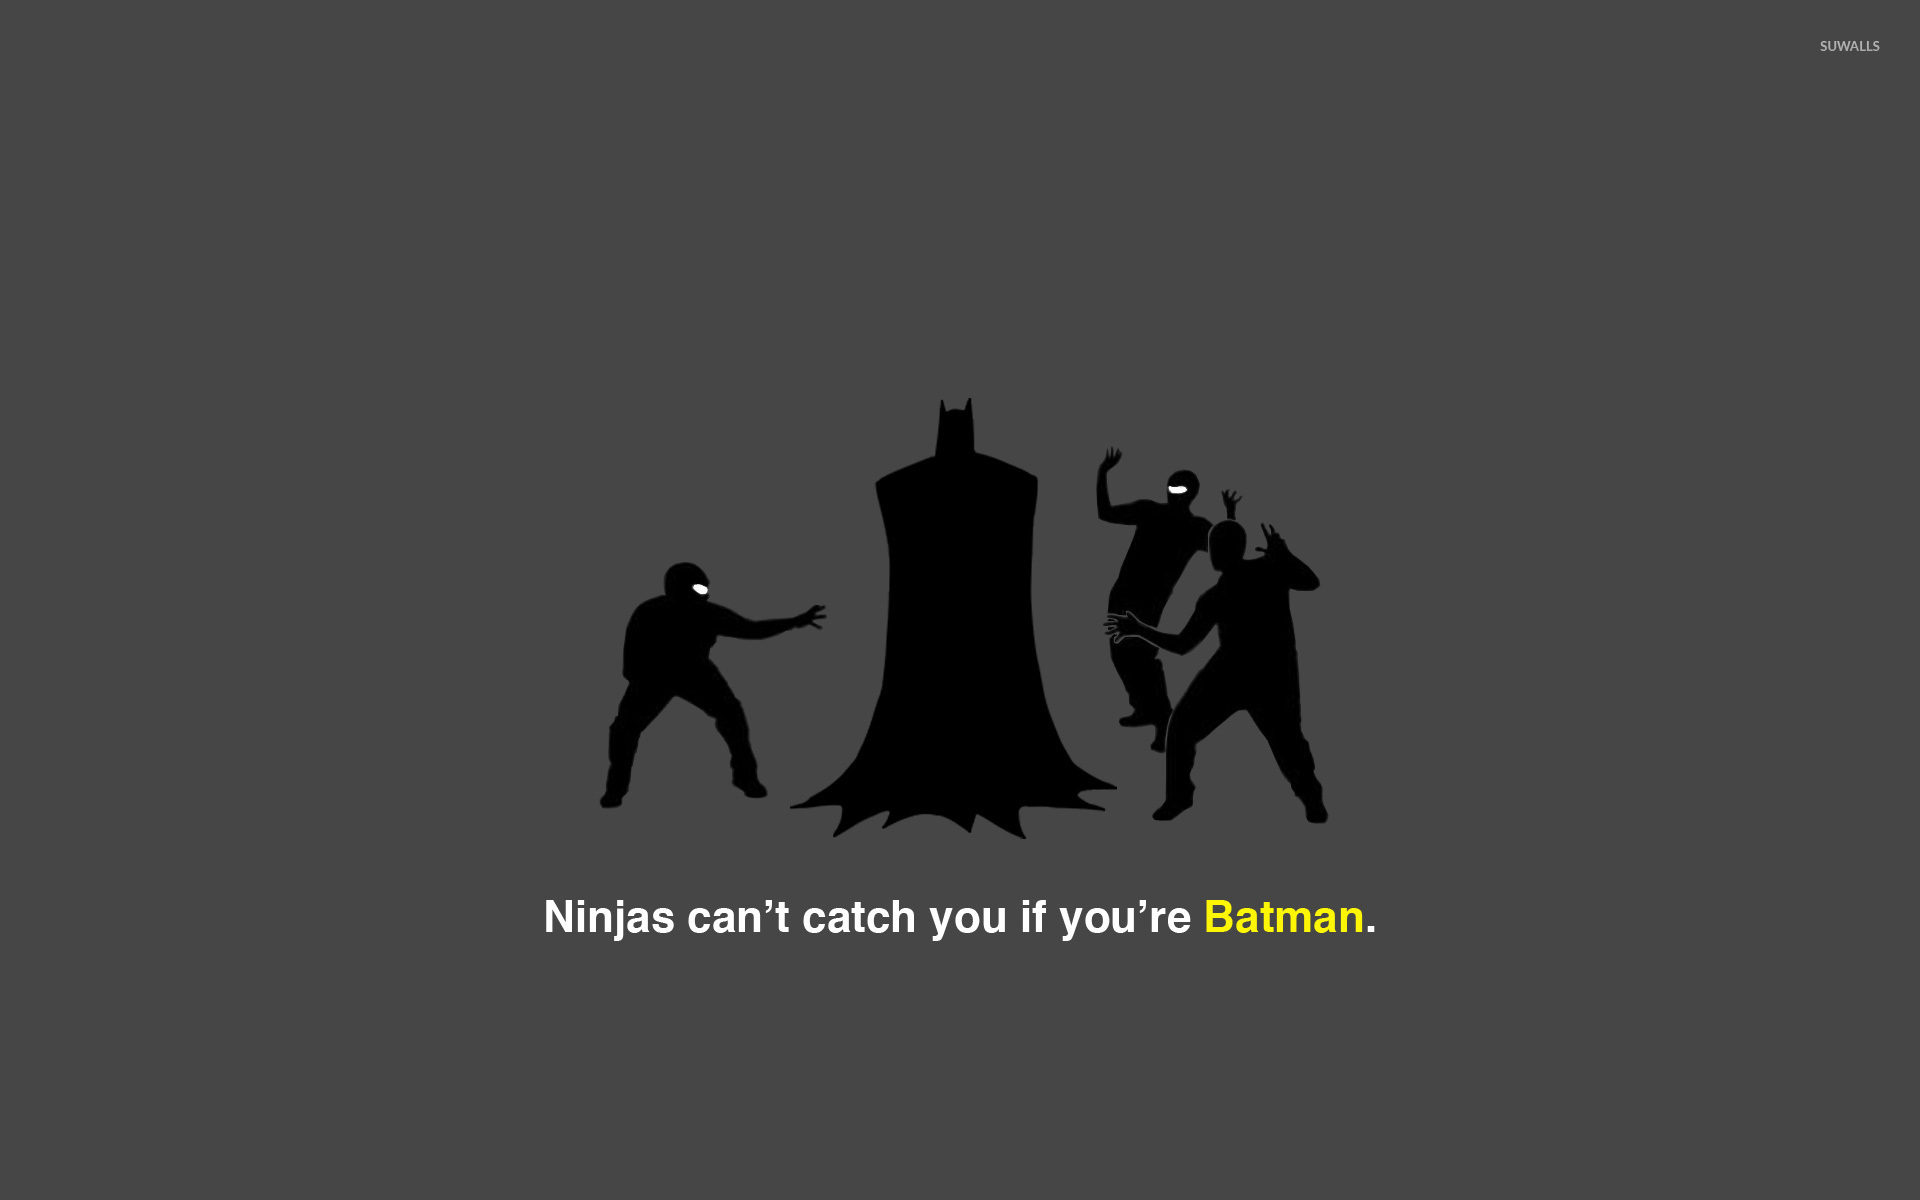 Programmer Quotes Wallpaper Hd Ninjas Can T Catch You If You Re Batman Wallpaper Meme